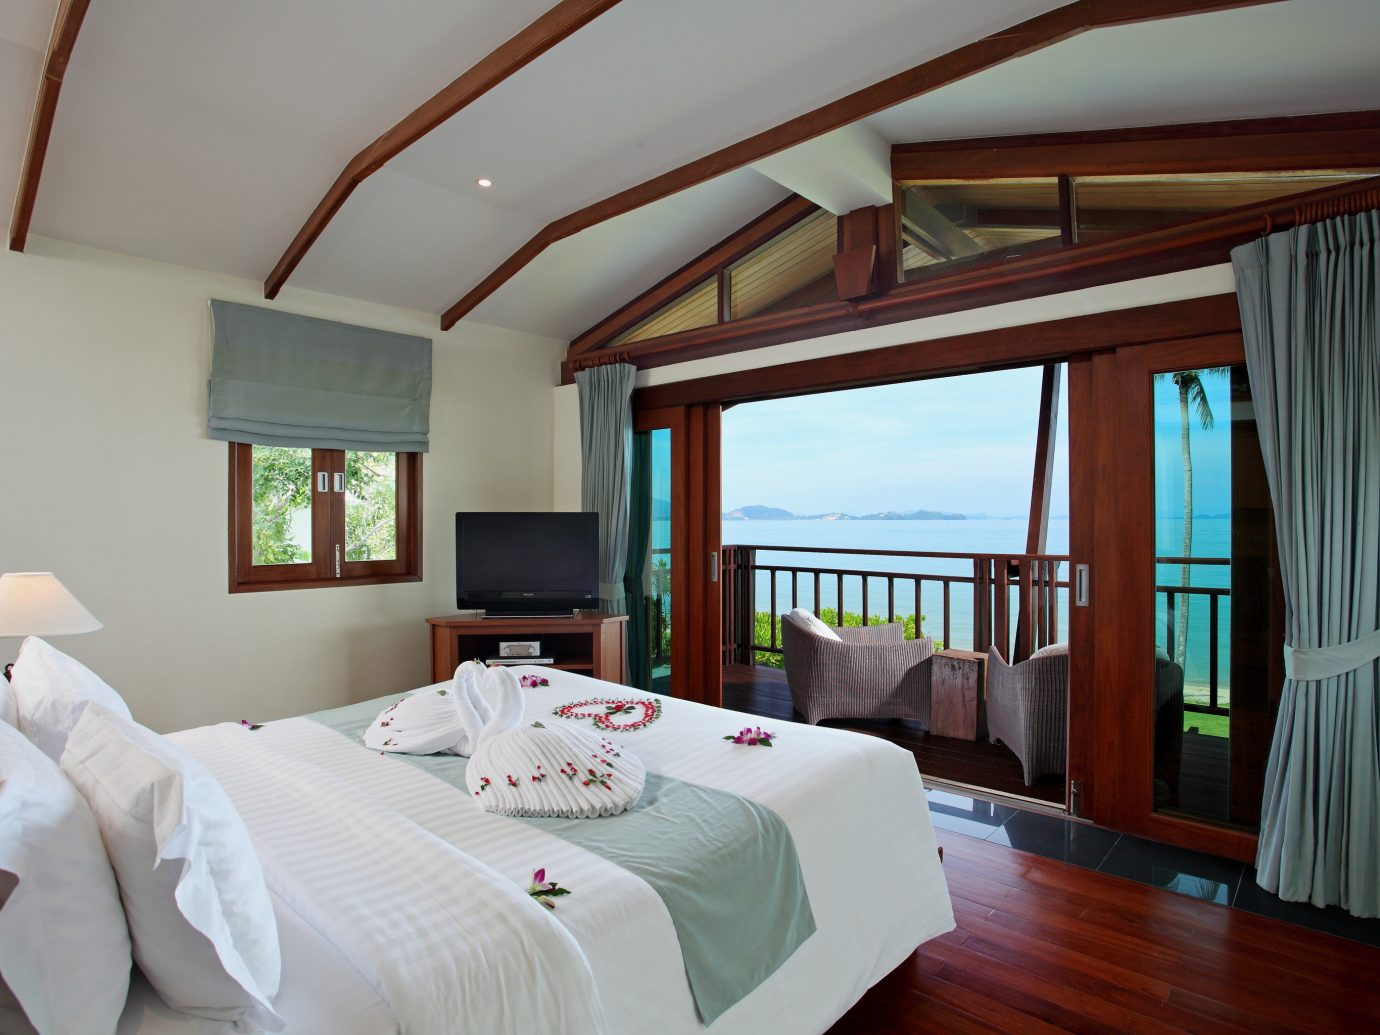 Beach Hotels Phuket Thailand indoor bed wall room floor Bedroom hotel ceiling Suite interior design pillow real estate estate window boarding house Resort wood furniture